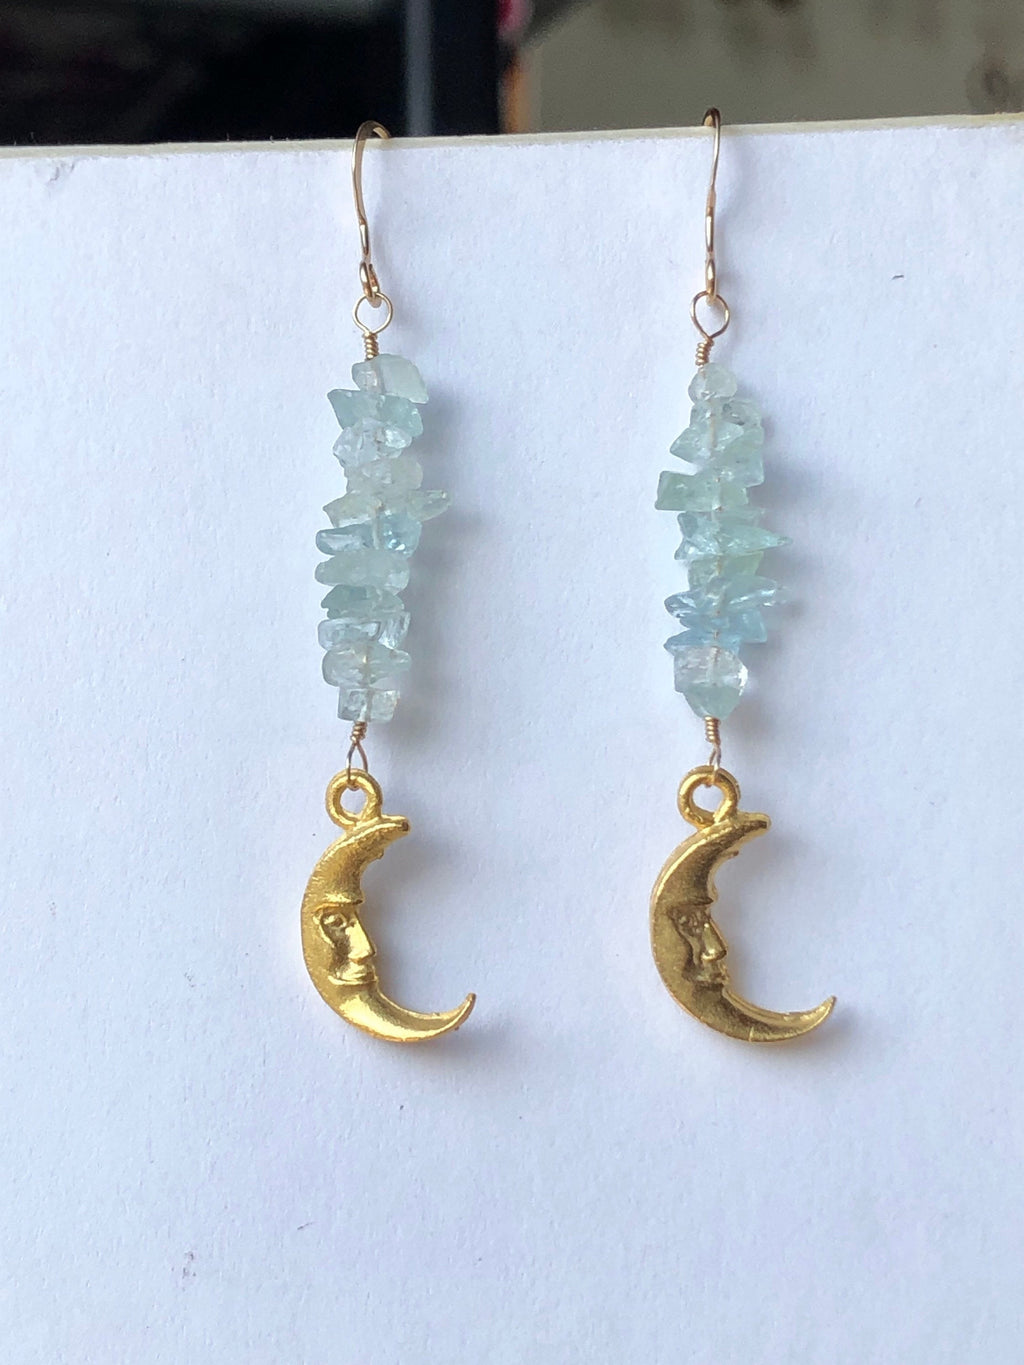 Aquamarine Moon Earrings / Gemstone Stack / March Birthstone / Vintage Moon Charms / Crescent Moon Jewelry / Pisces Aquamarine / 14k Gold